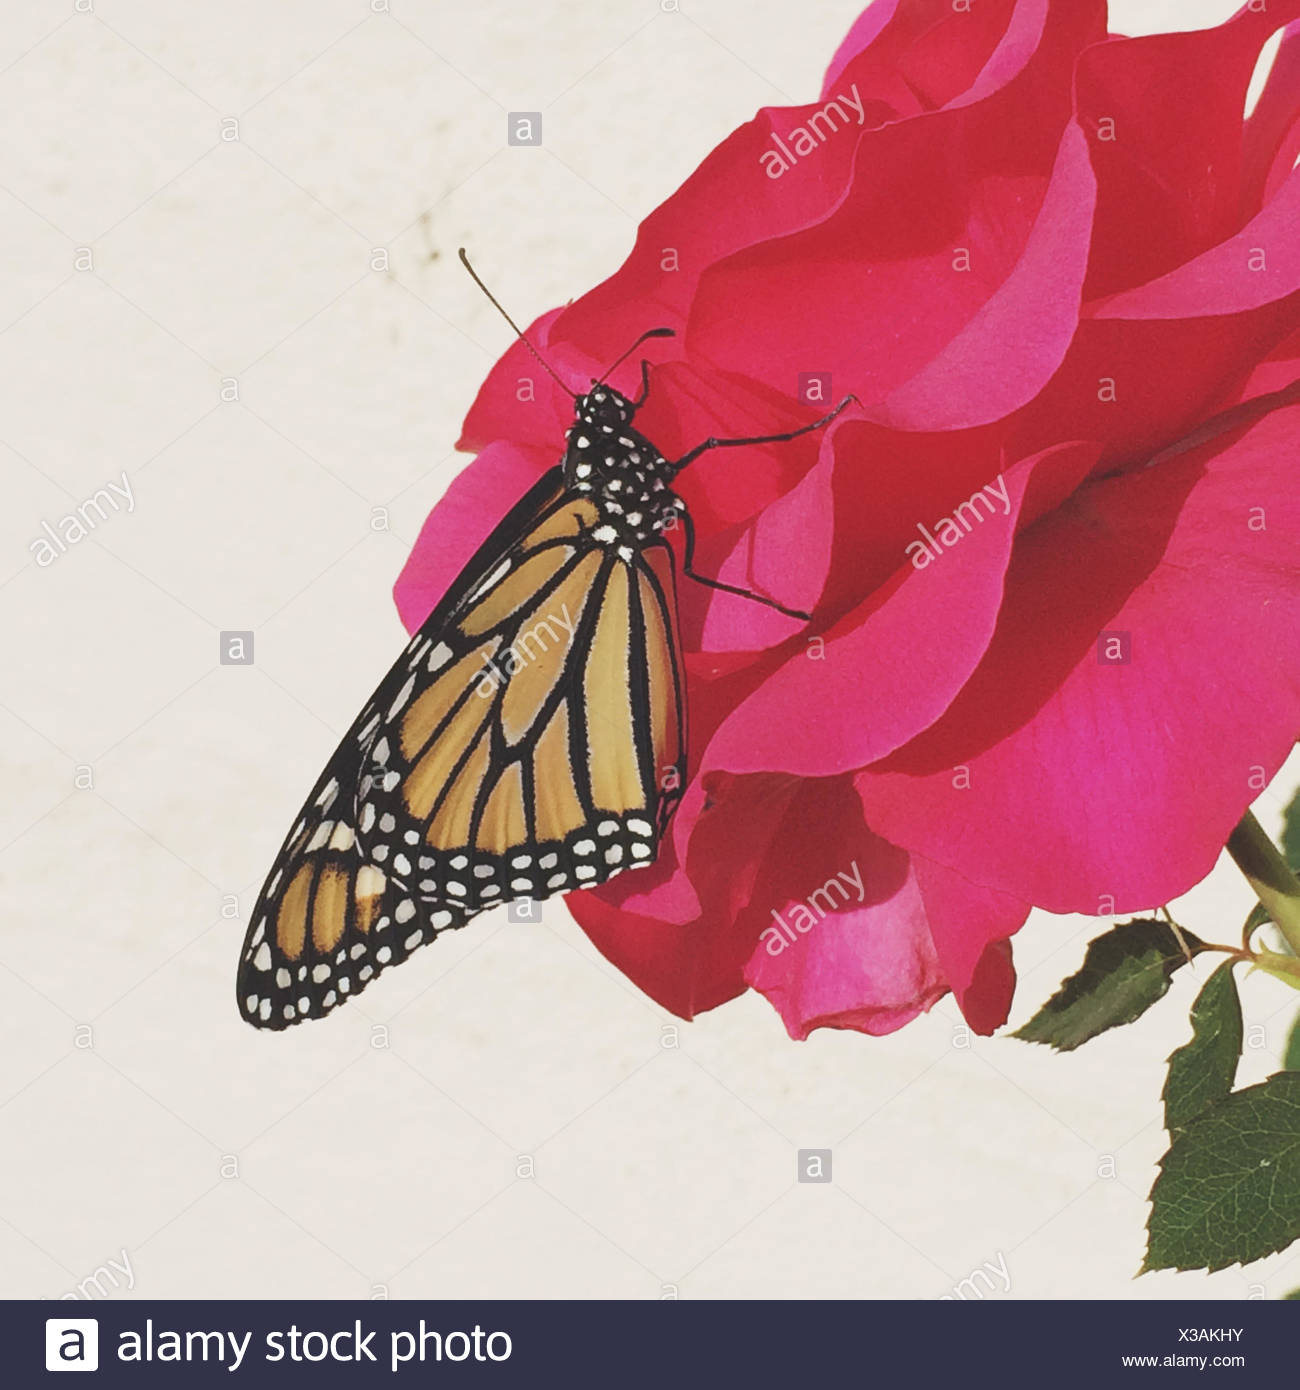 Monarch butterfly on rose's head - Stock Image